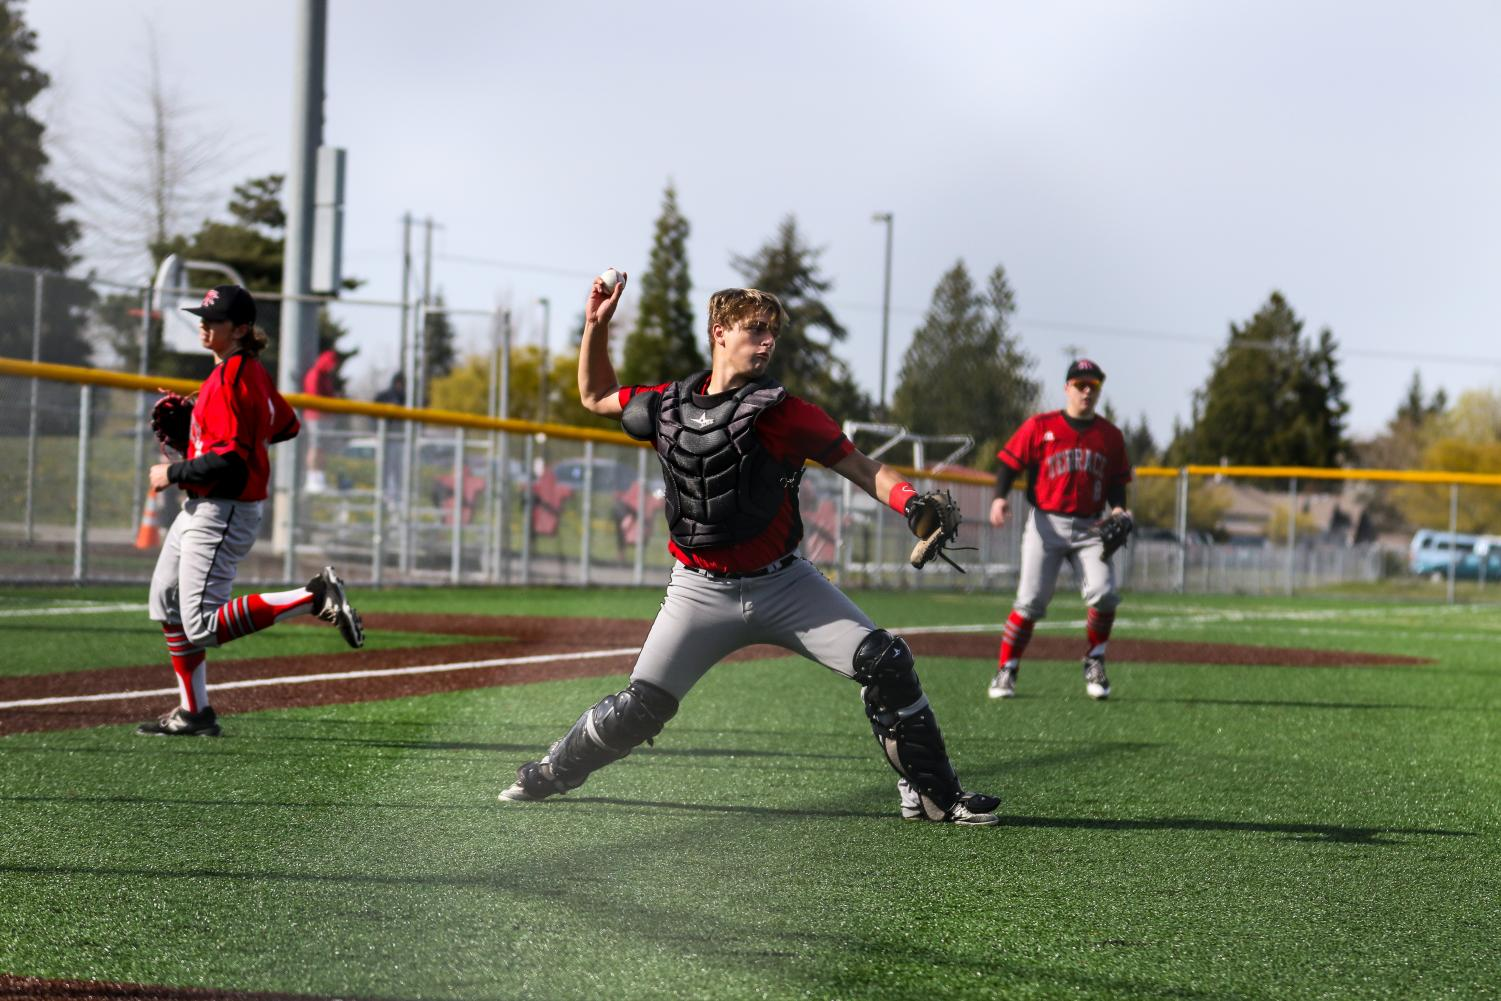 Catcher Dan Bingaman picking up and fielding the ball after the hitter bunted it